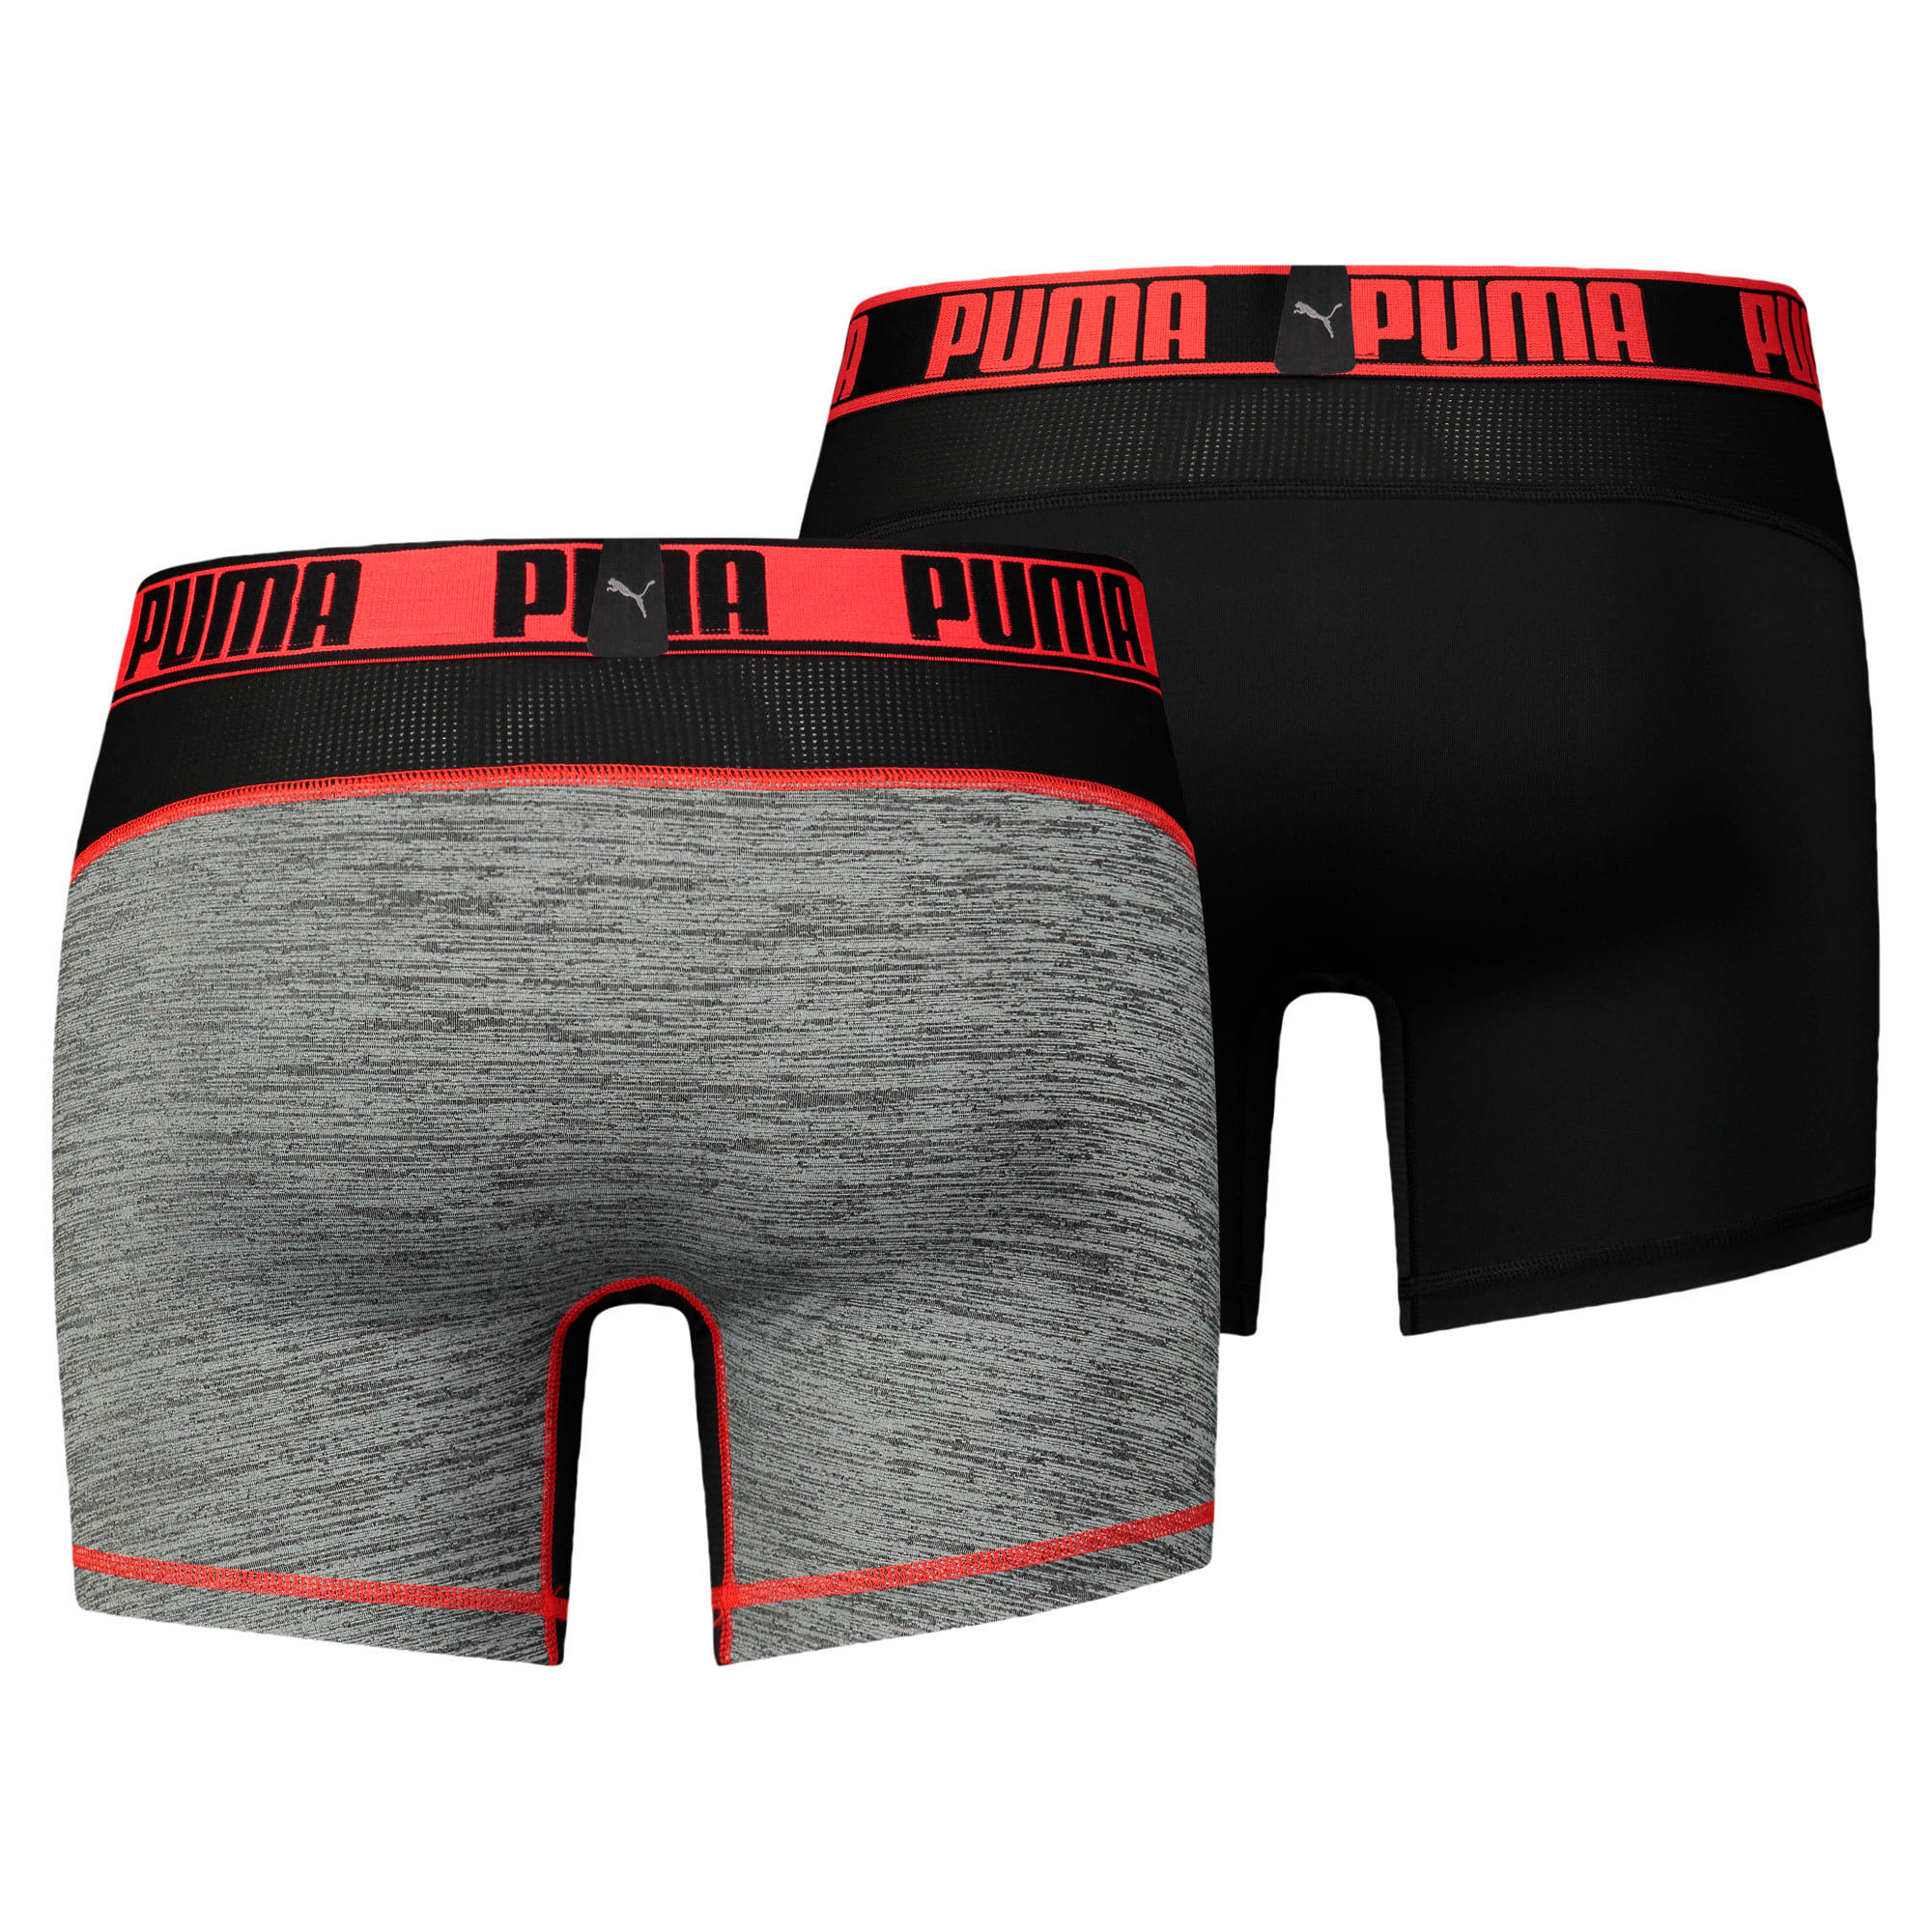 Thumbnail 2 of Active Men's Grizzly Boxer Shorts 2 Pack, black/red, medium